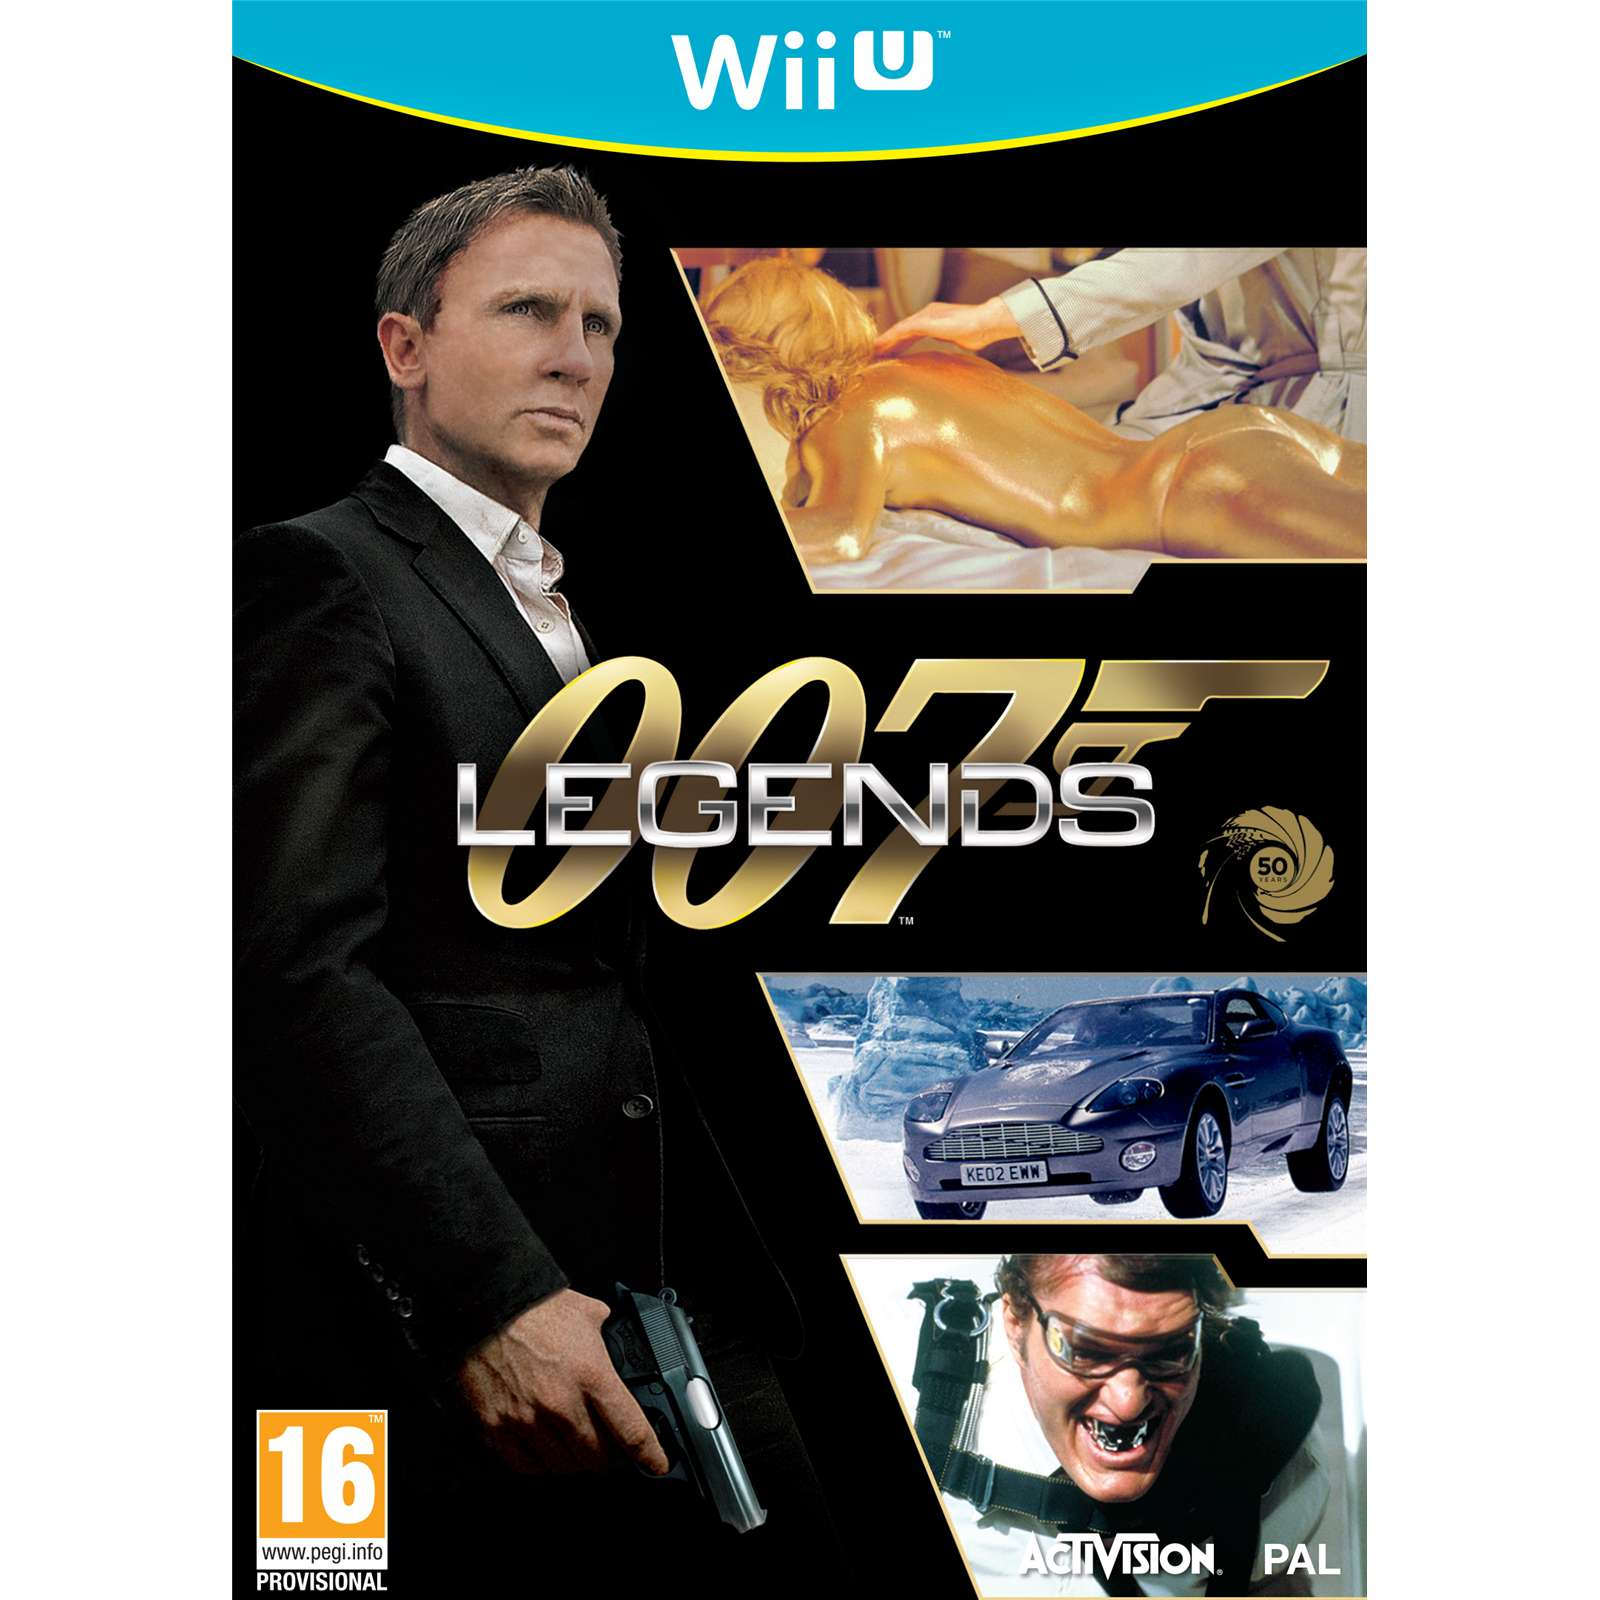 007-legends-3